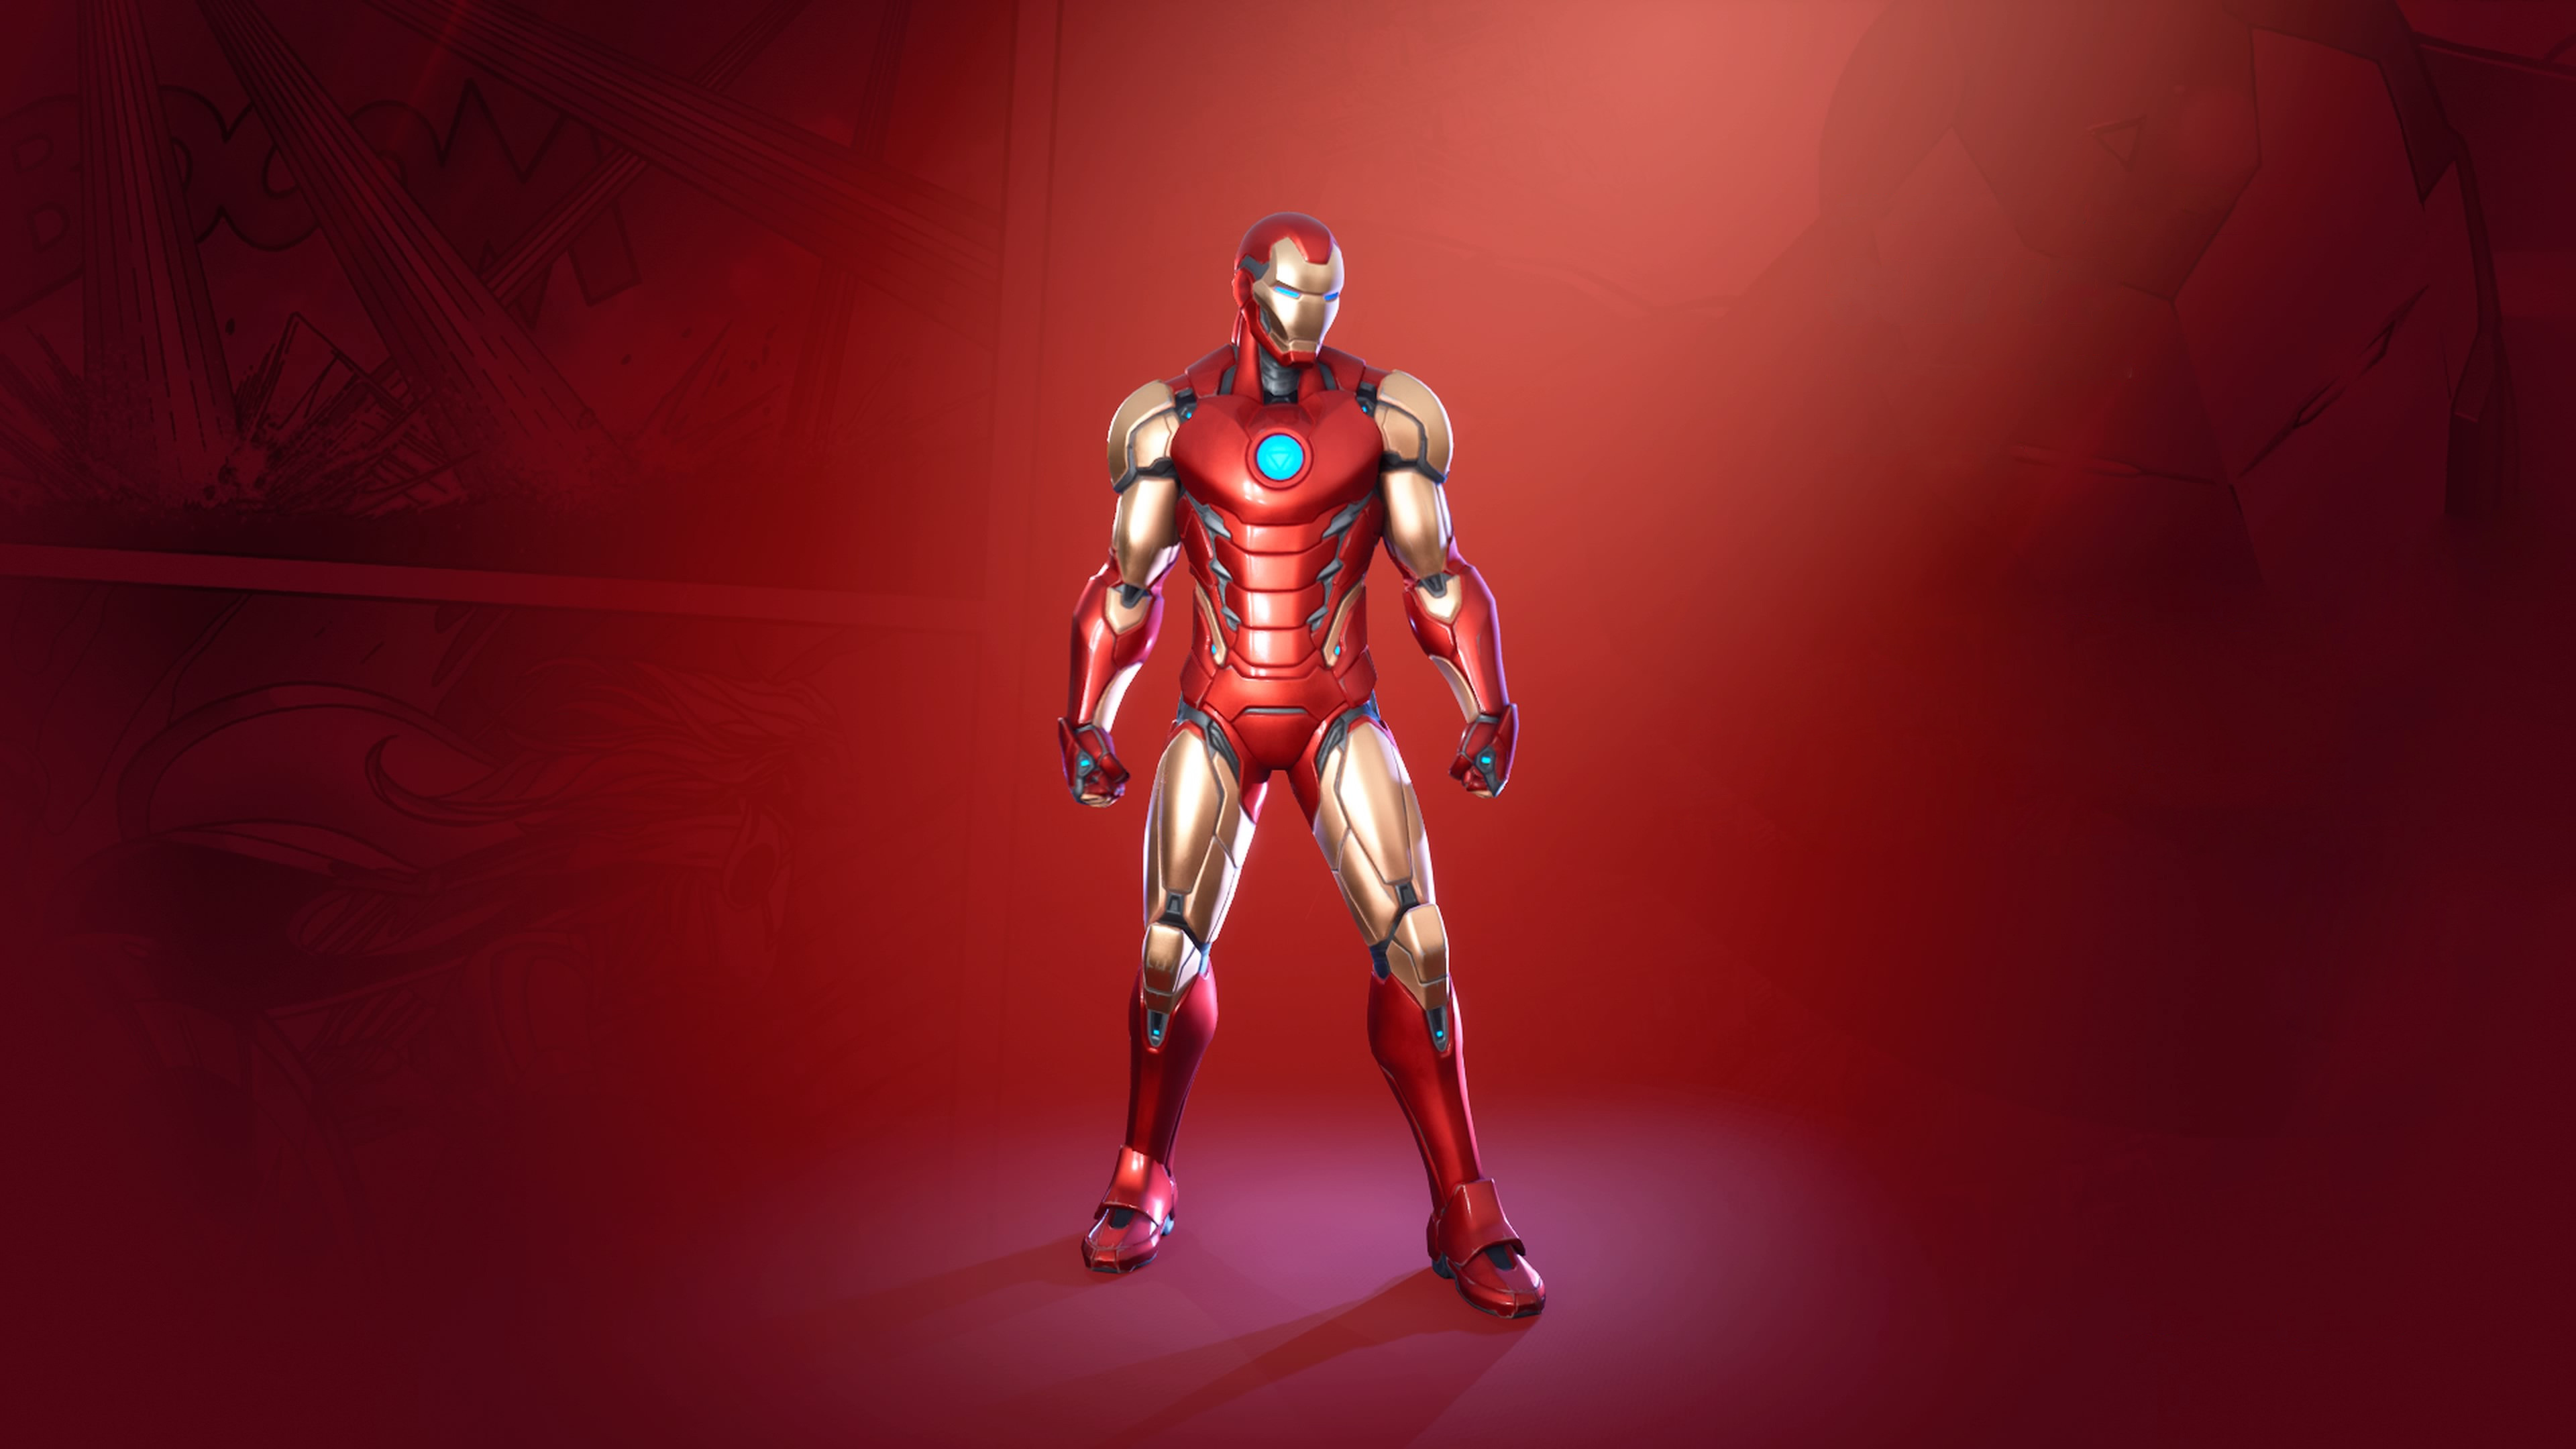 1336x768 Iron Man Fortnite Season 4 Hd Laptop Wallpaper Hd Games 4k Wallpapers Images Photos And Background